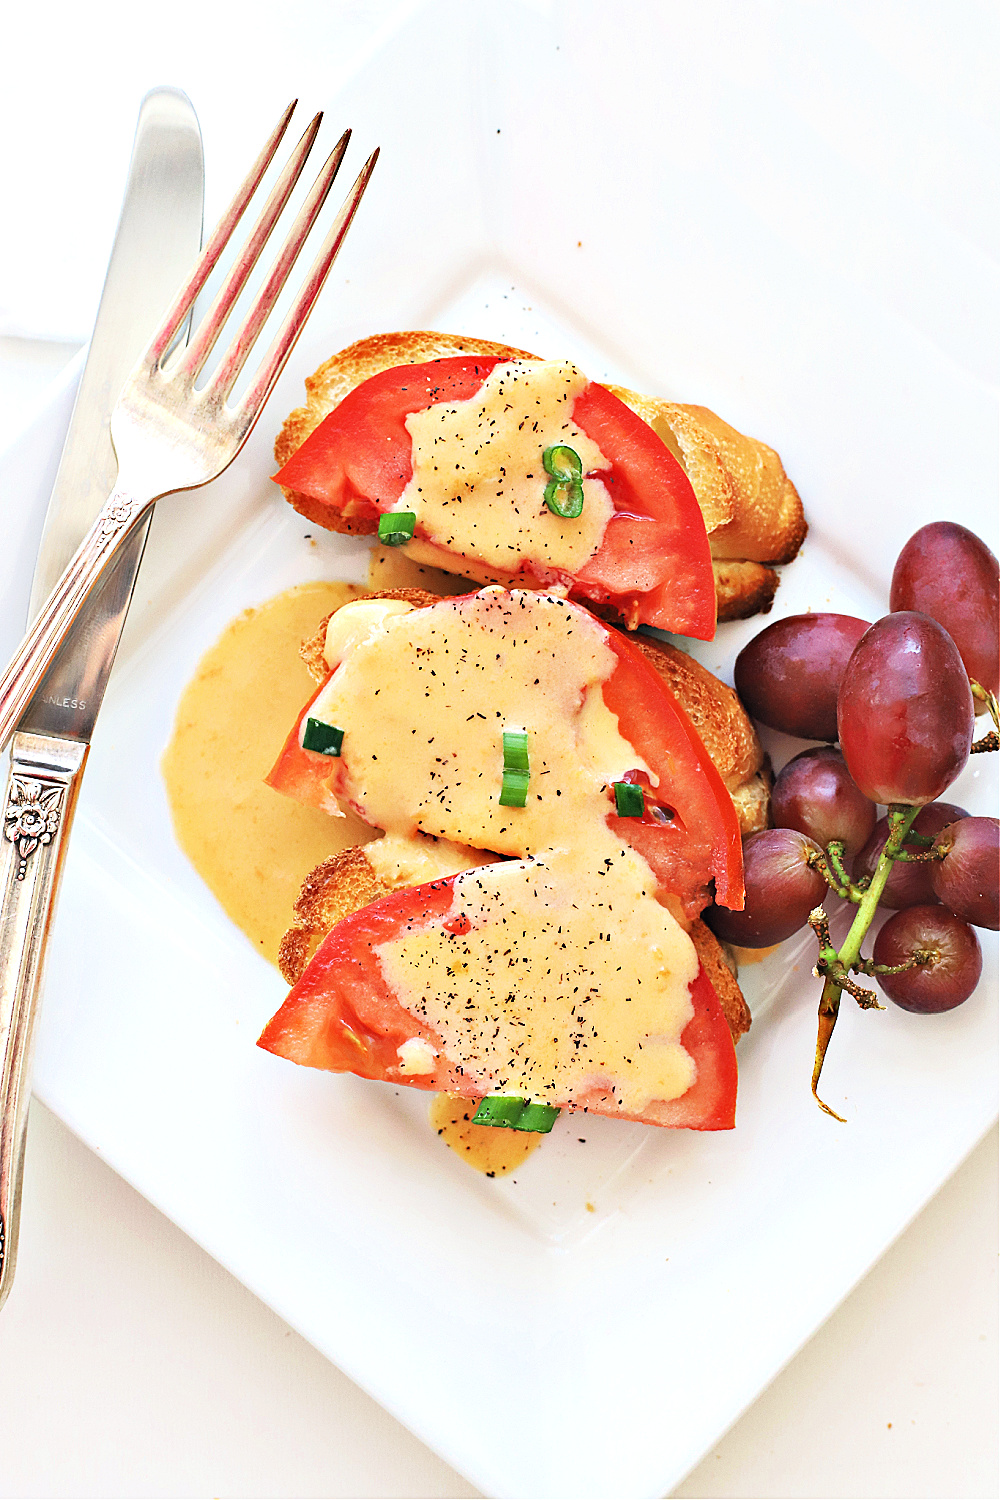 A quick & easy recipe for Welsh rarebit (or rabbit) is a British dish of a cheddar cheese and beer sauce spooned over toast for an elegant brunch, breakfast or lite dinner.